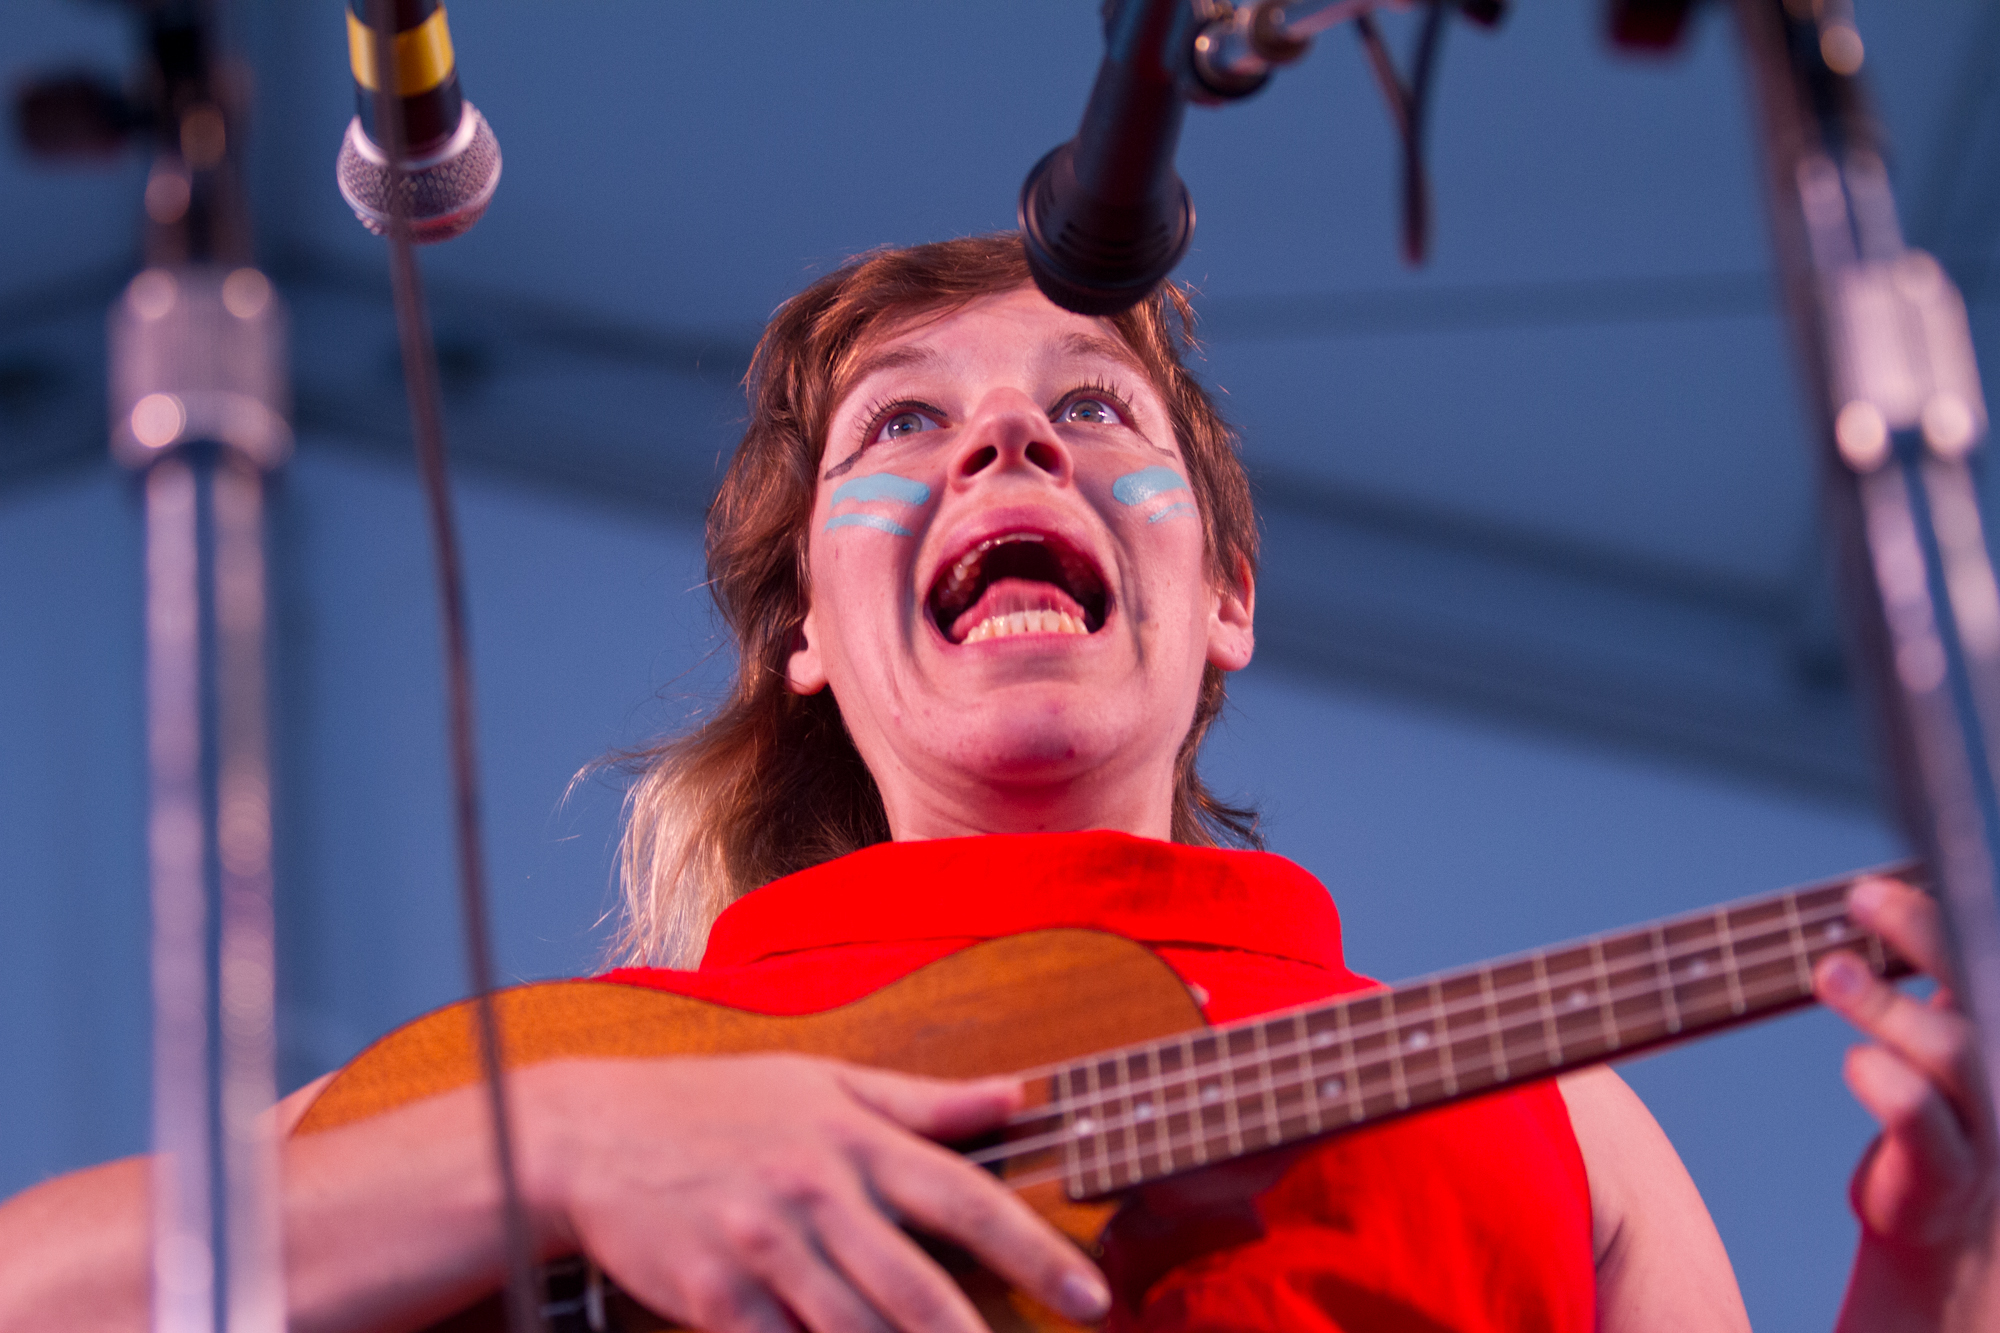 In facepaint and with ukelele in hand, tUnE-yArDs' Merrill Garbus had the folk festival attendees in an ecstatic dance during an epic rave-up.